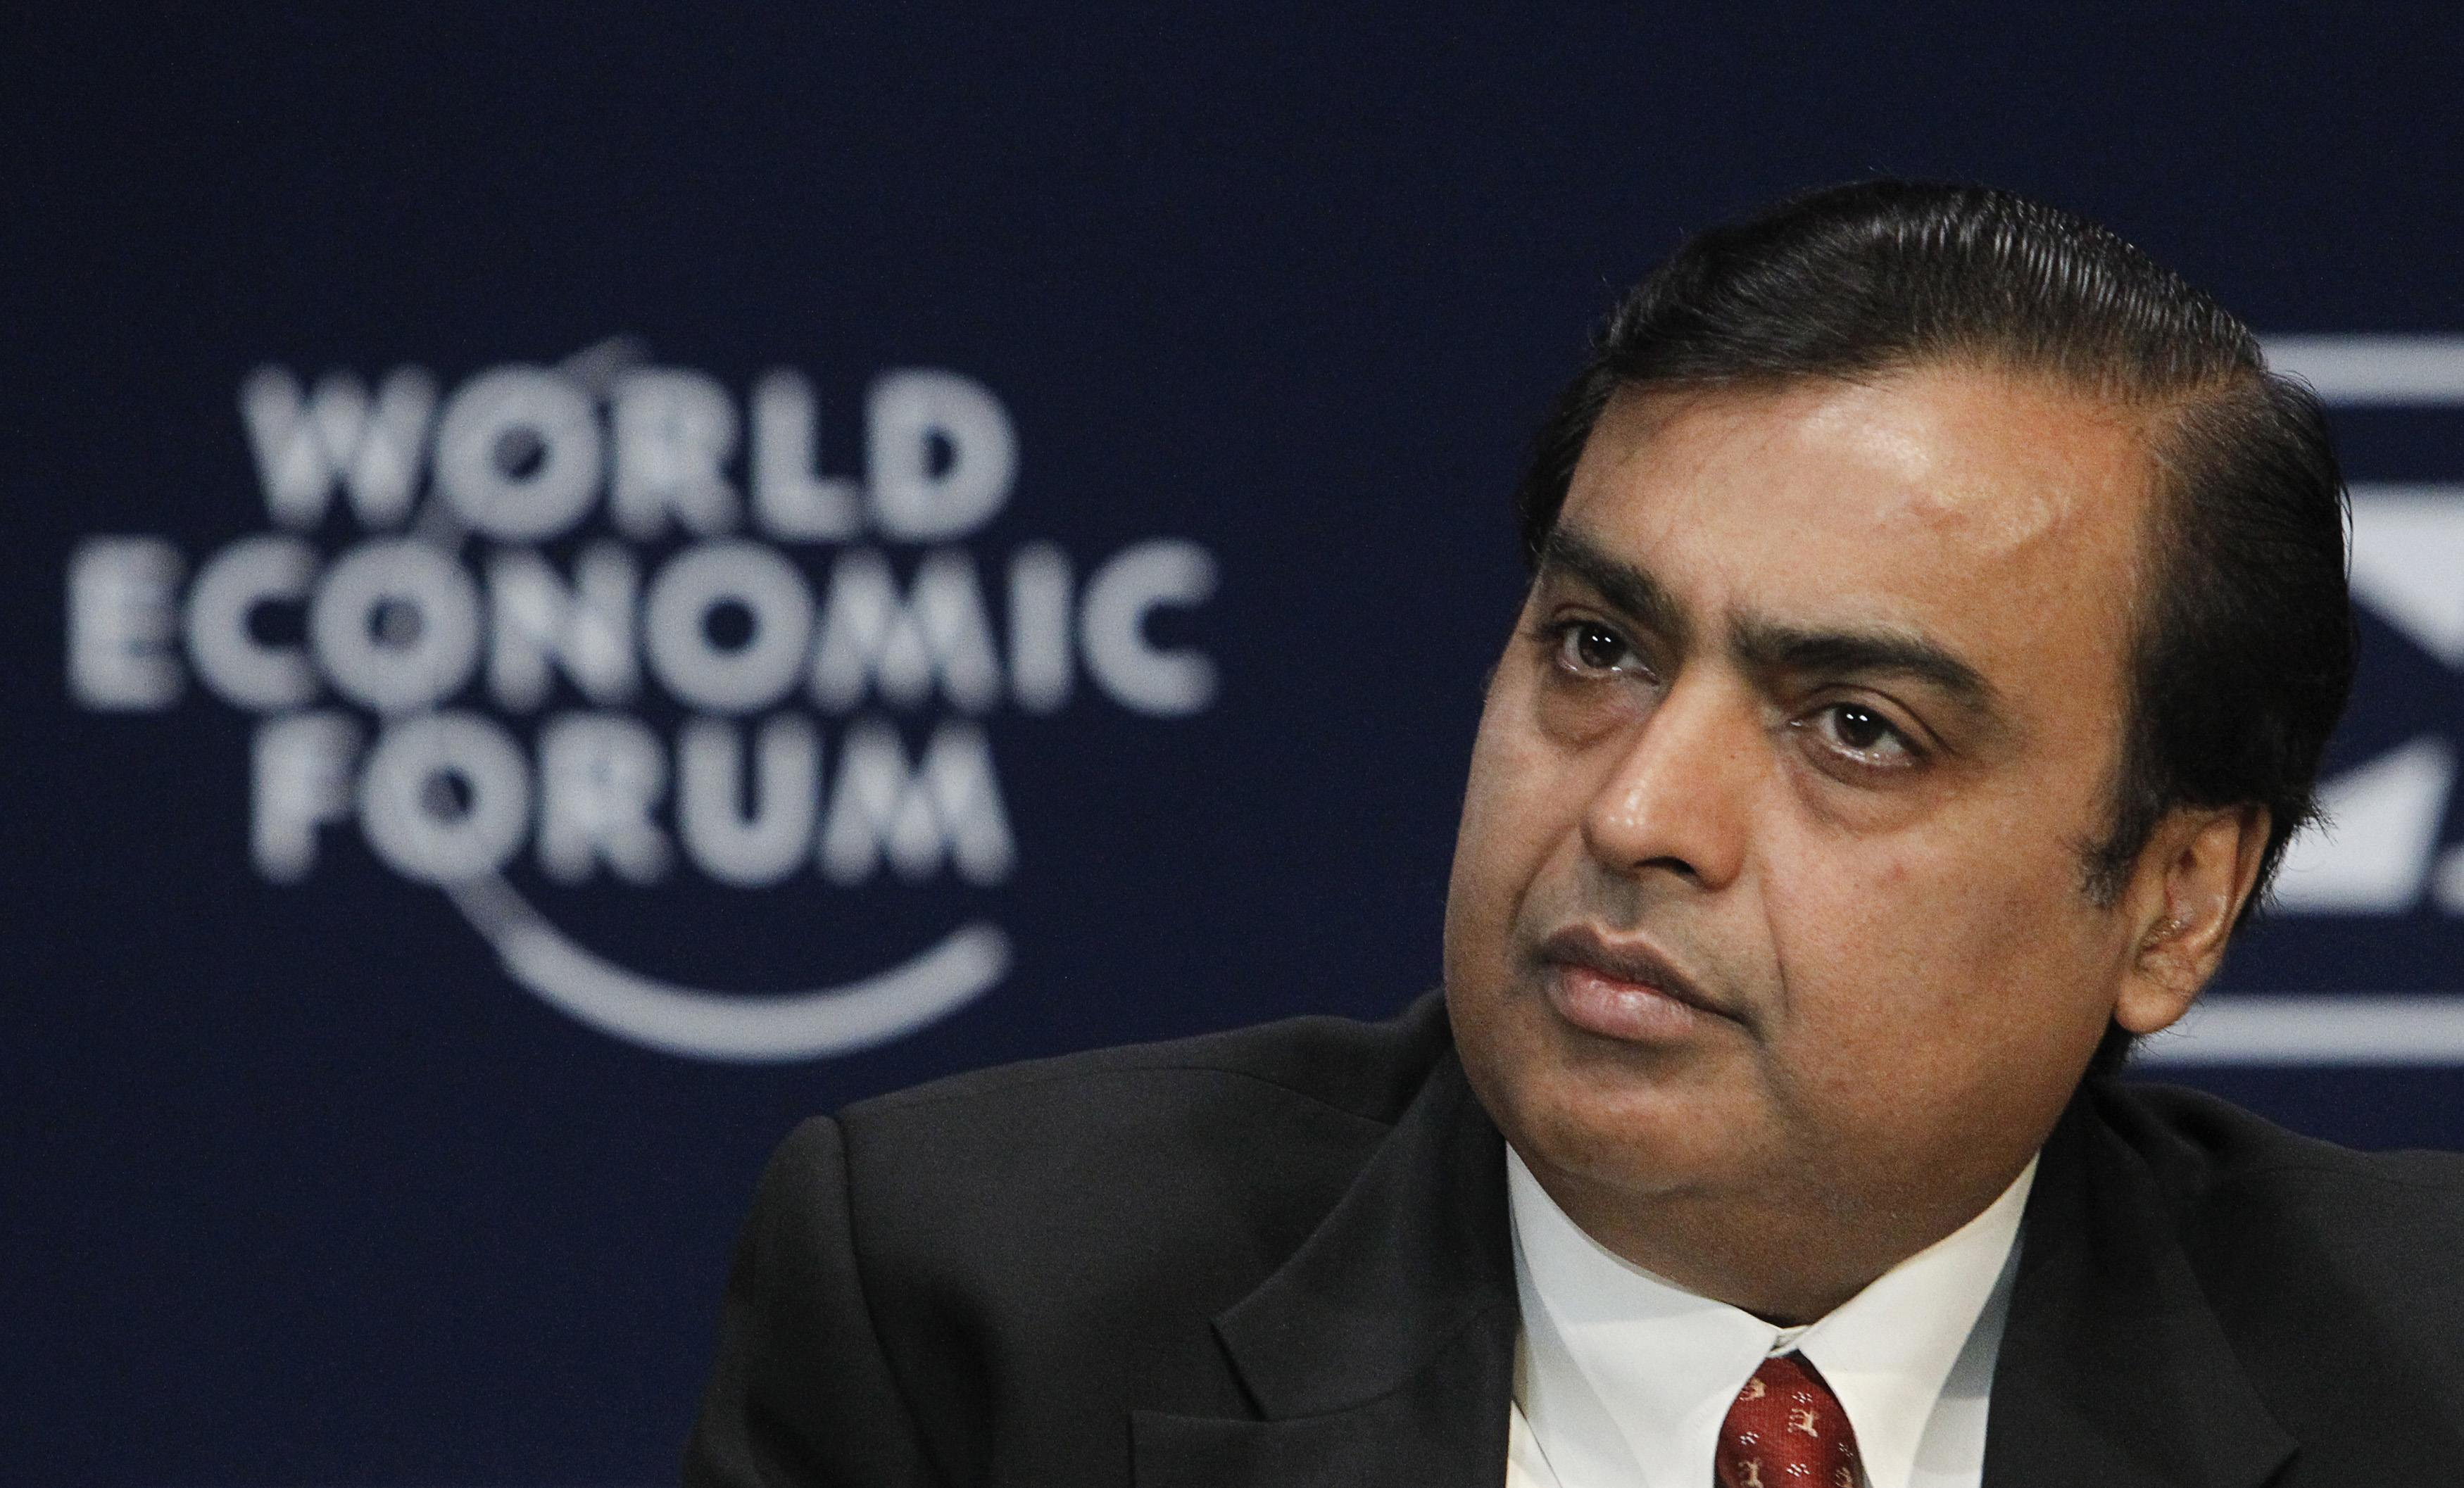 Mukesh ambani 36th richest person on the planet according to forbes